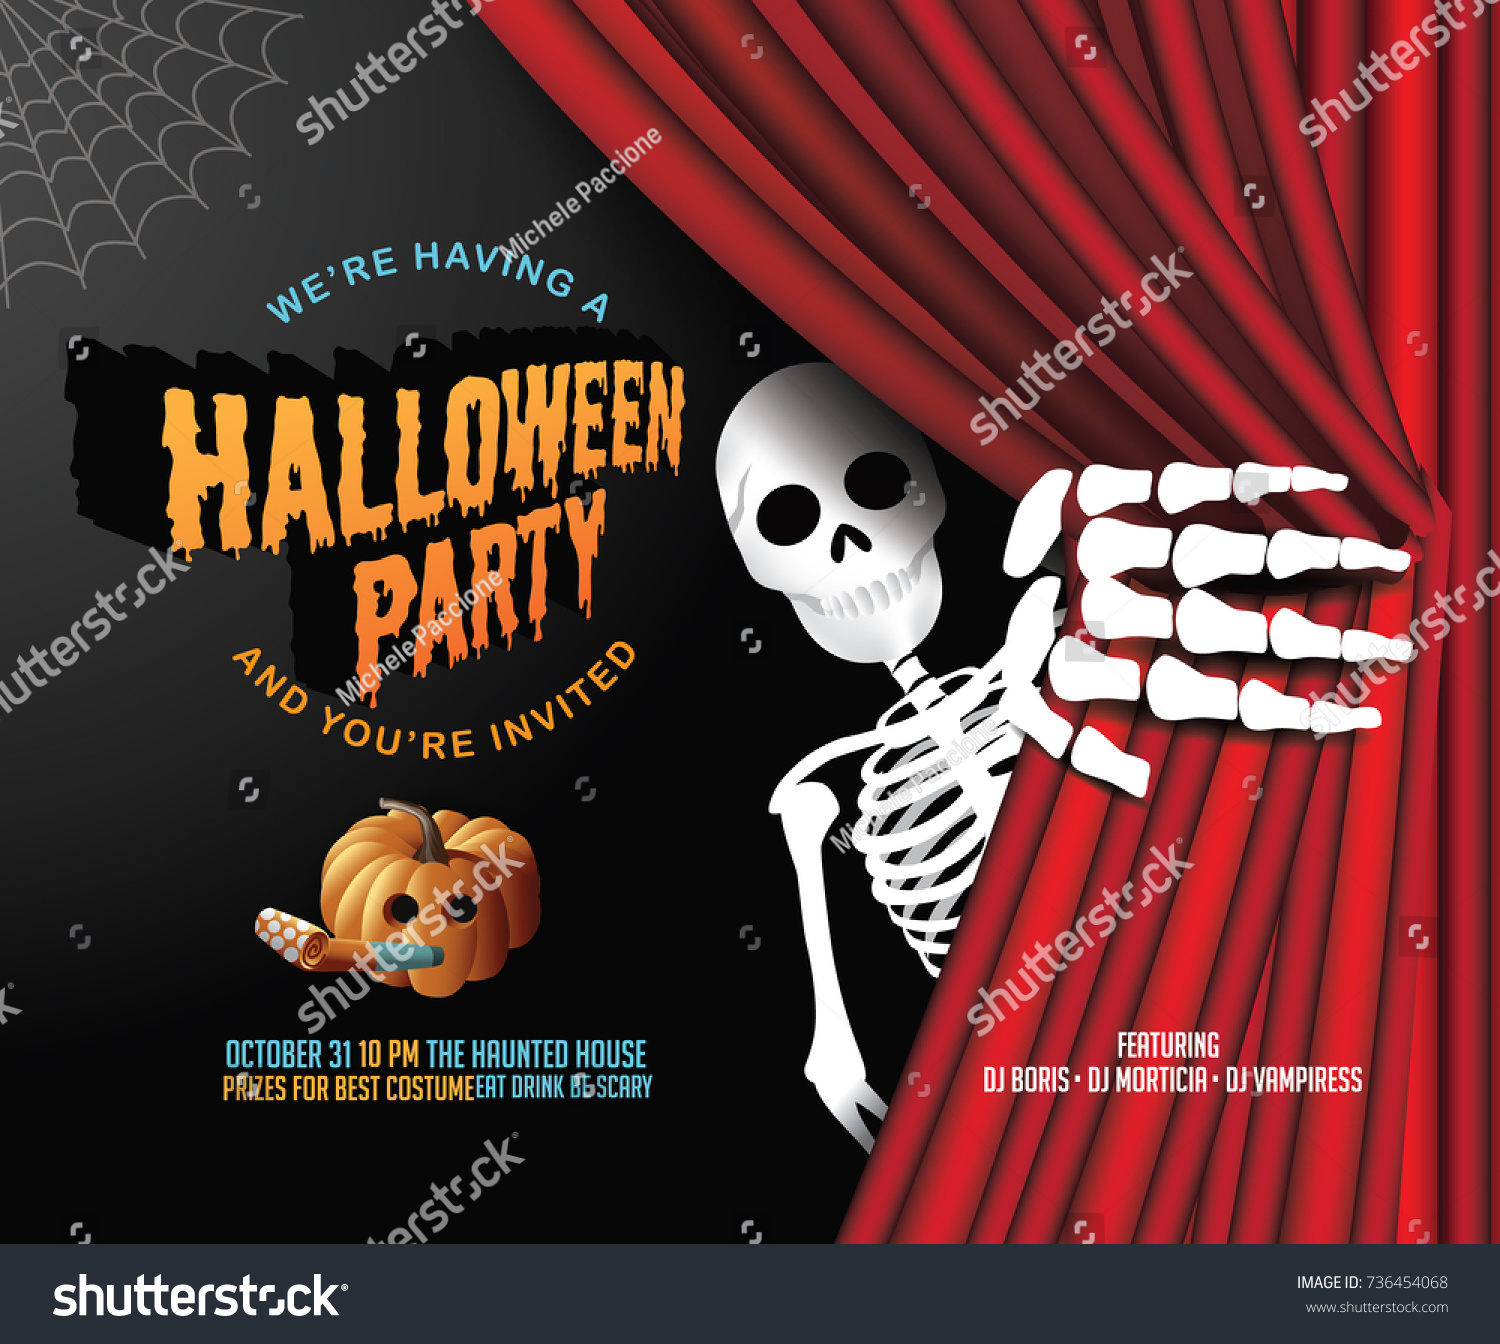 Halloween Party Invitation Background Red Curtains Stock Vector ...